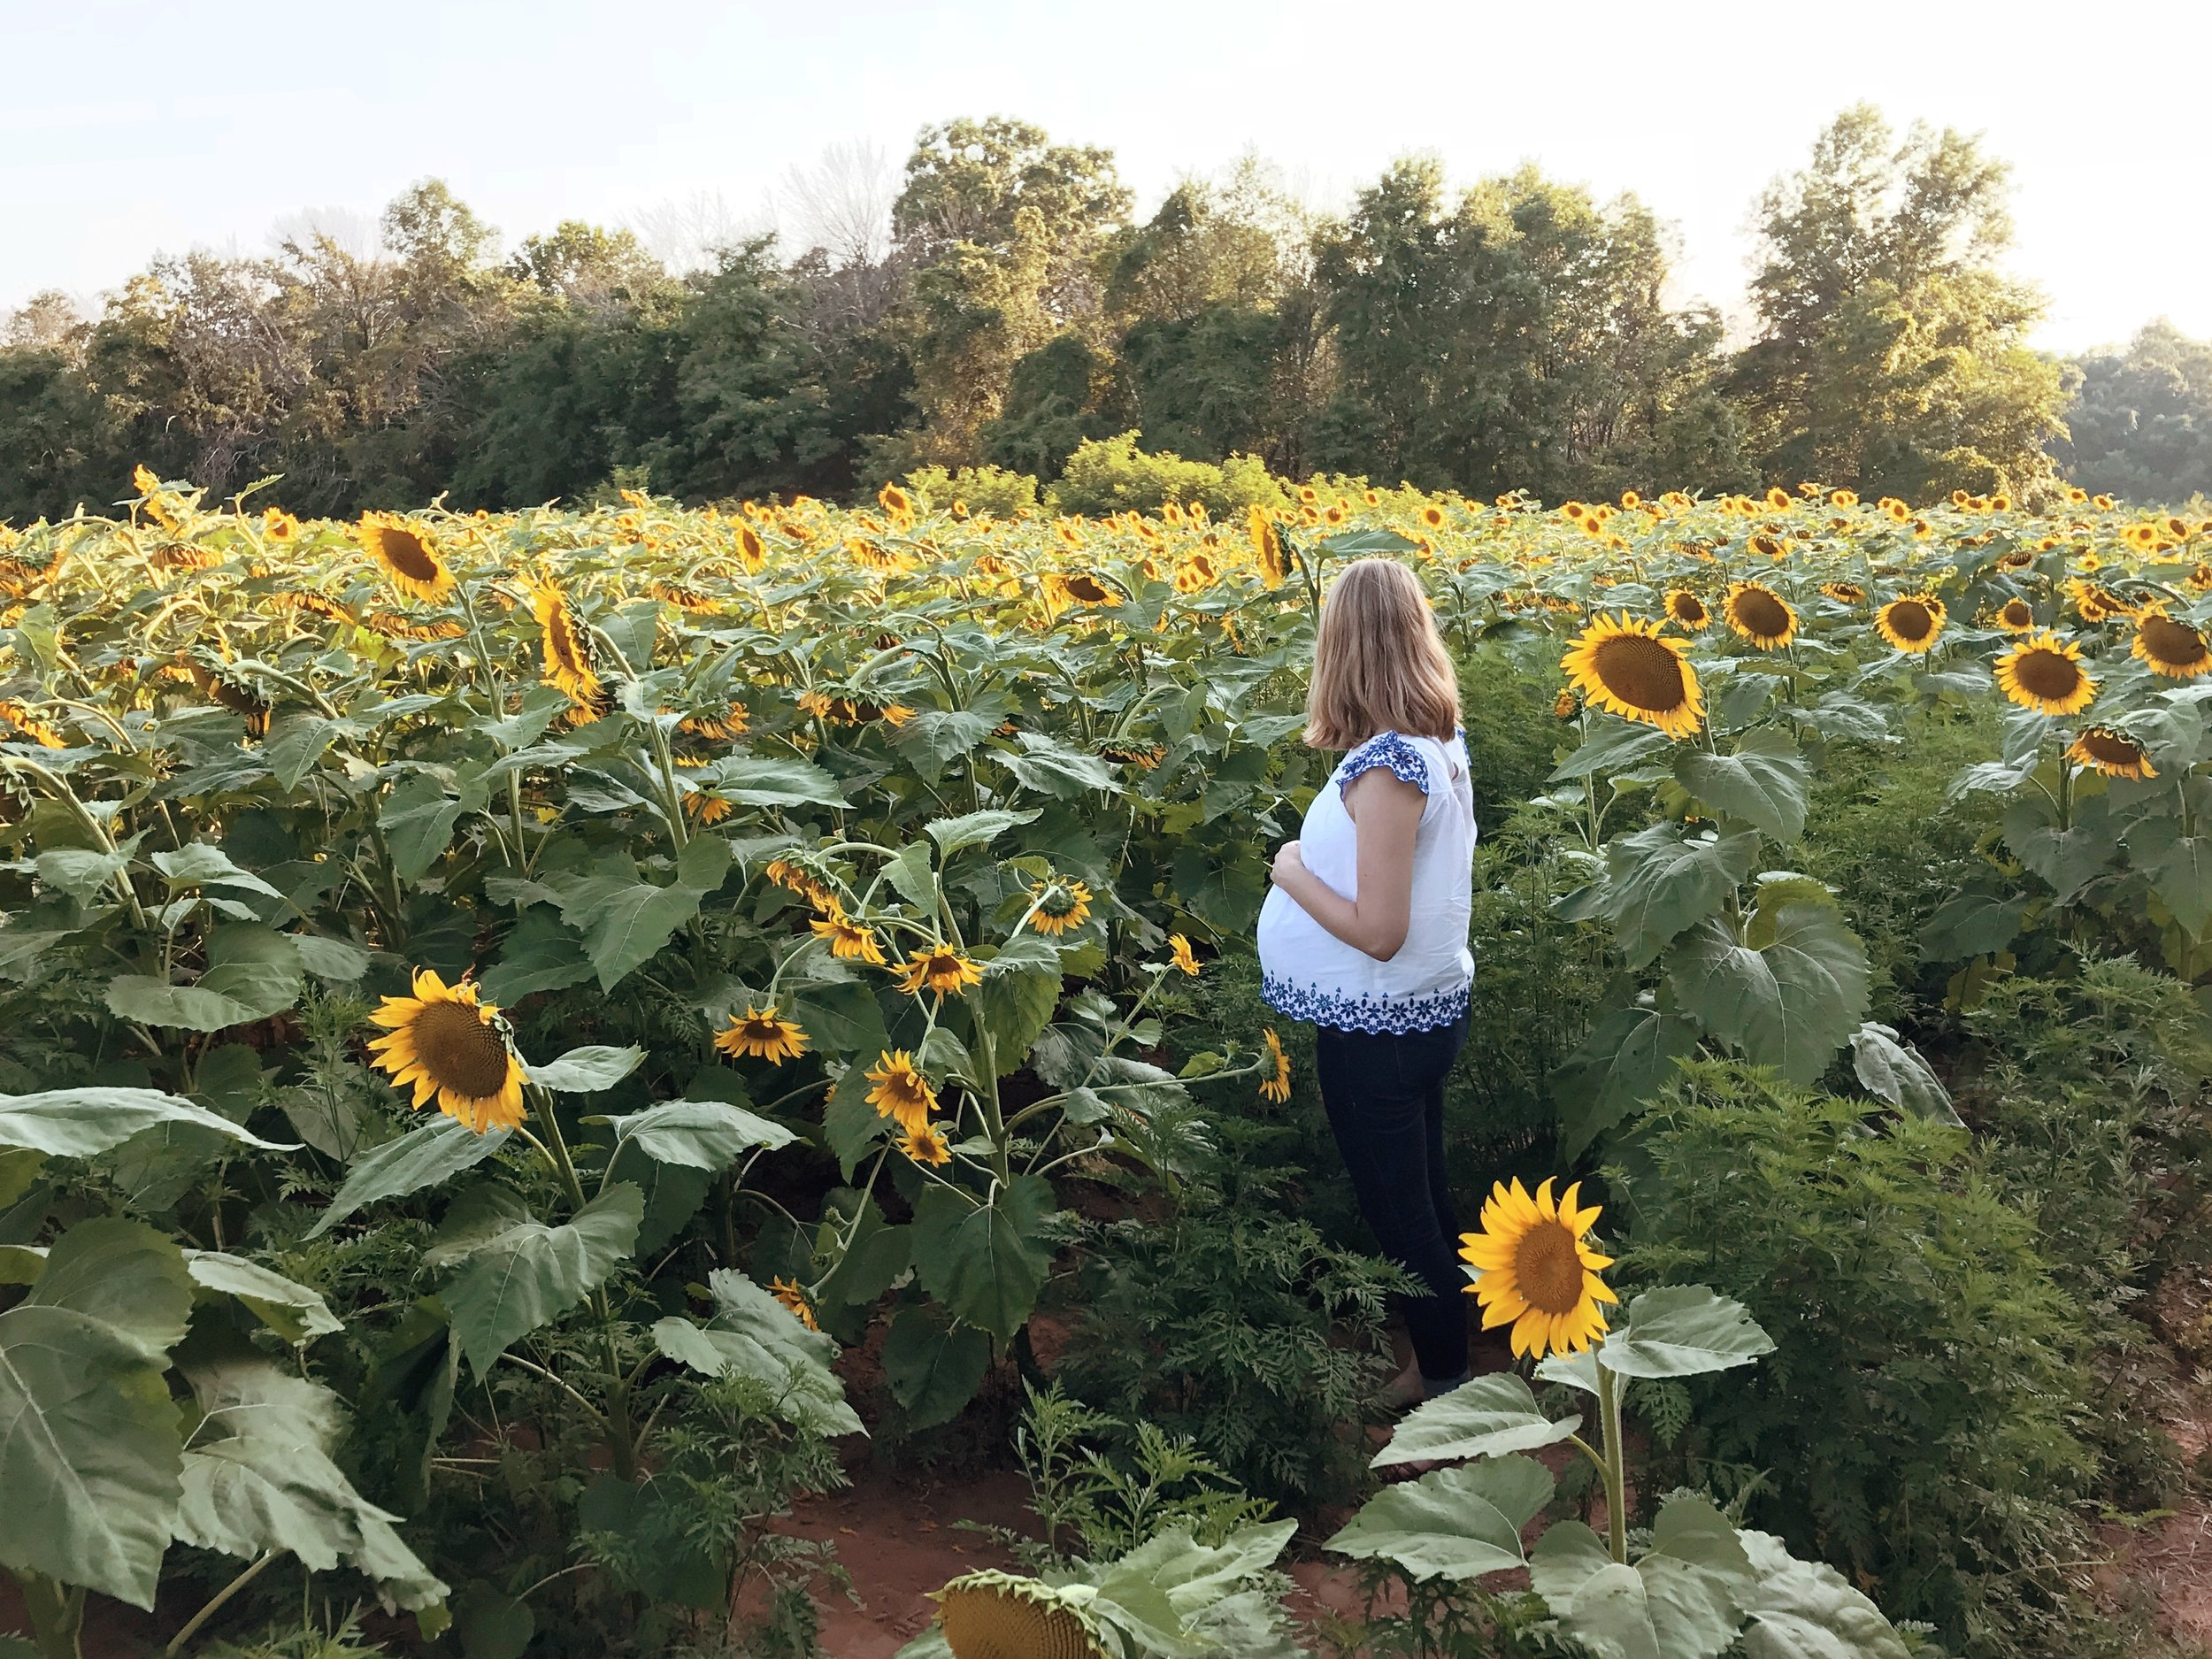 sunflowers-nora-knox.jpg